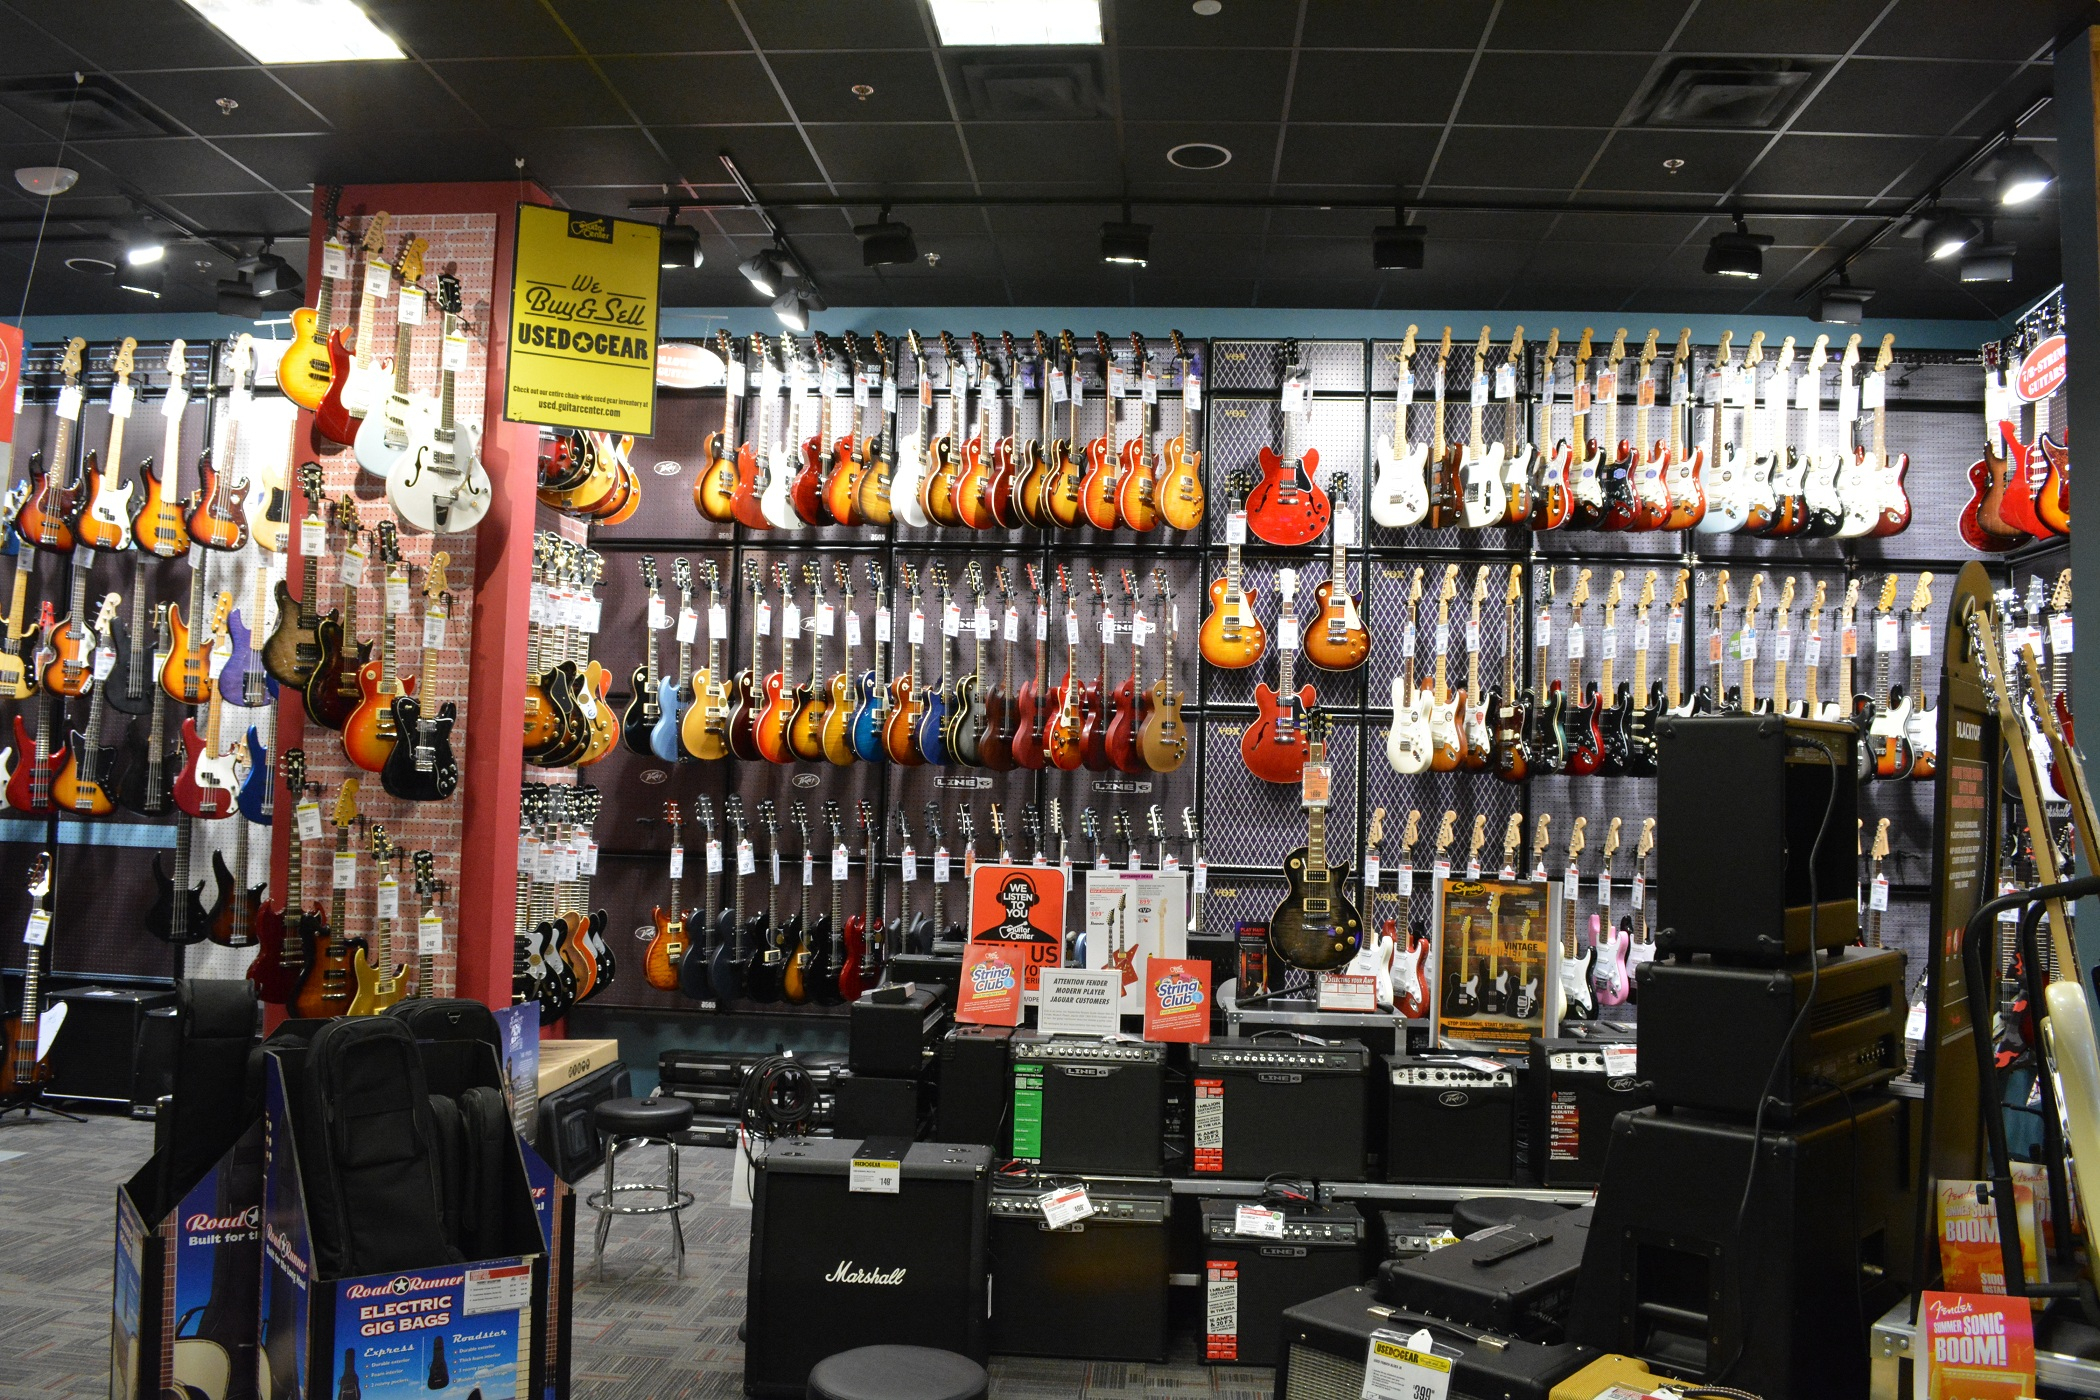 Guitar Center Lessons image 3